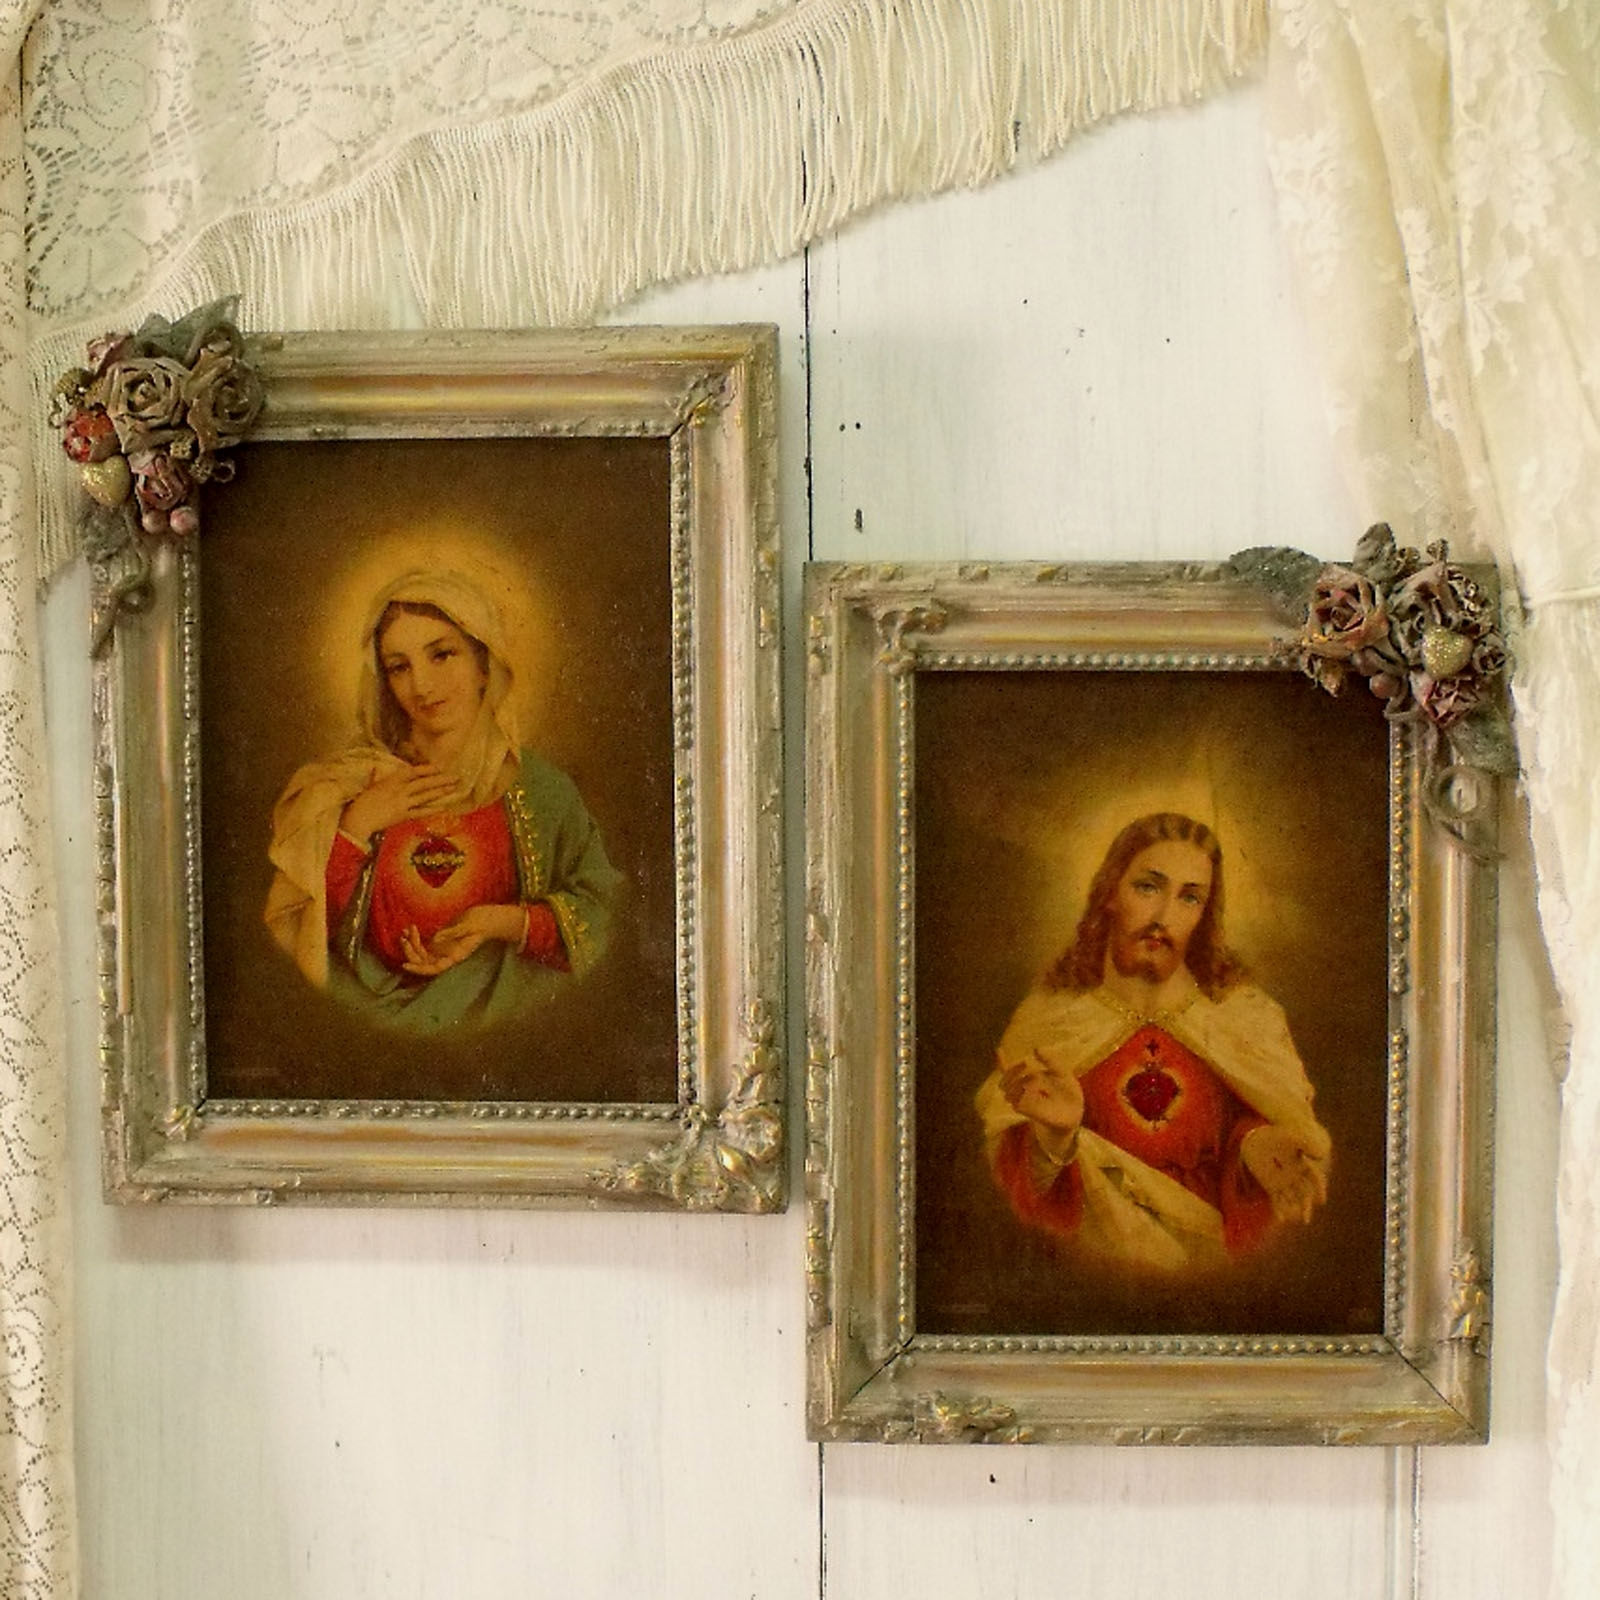 Shabby Chic Framed Art Prints Pertaining To Latest Vintage Jesus Virgin Mary Textured Prints Framed Pair (View 14 of 15)